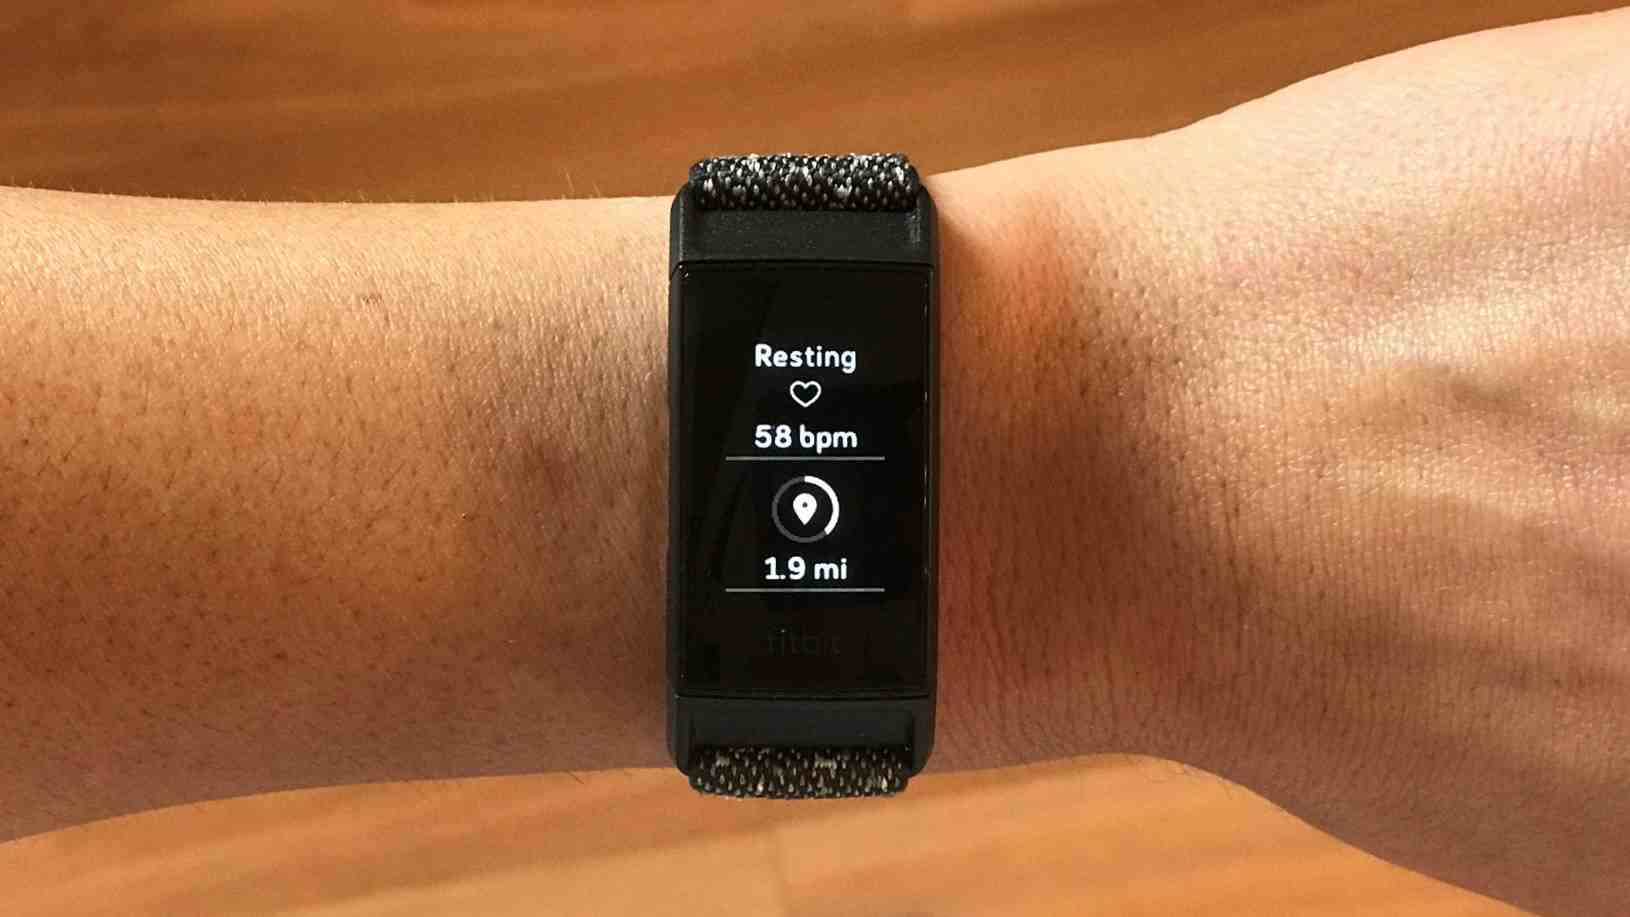 Is there a better fitness tracker than Fitbit?